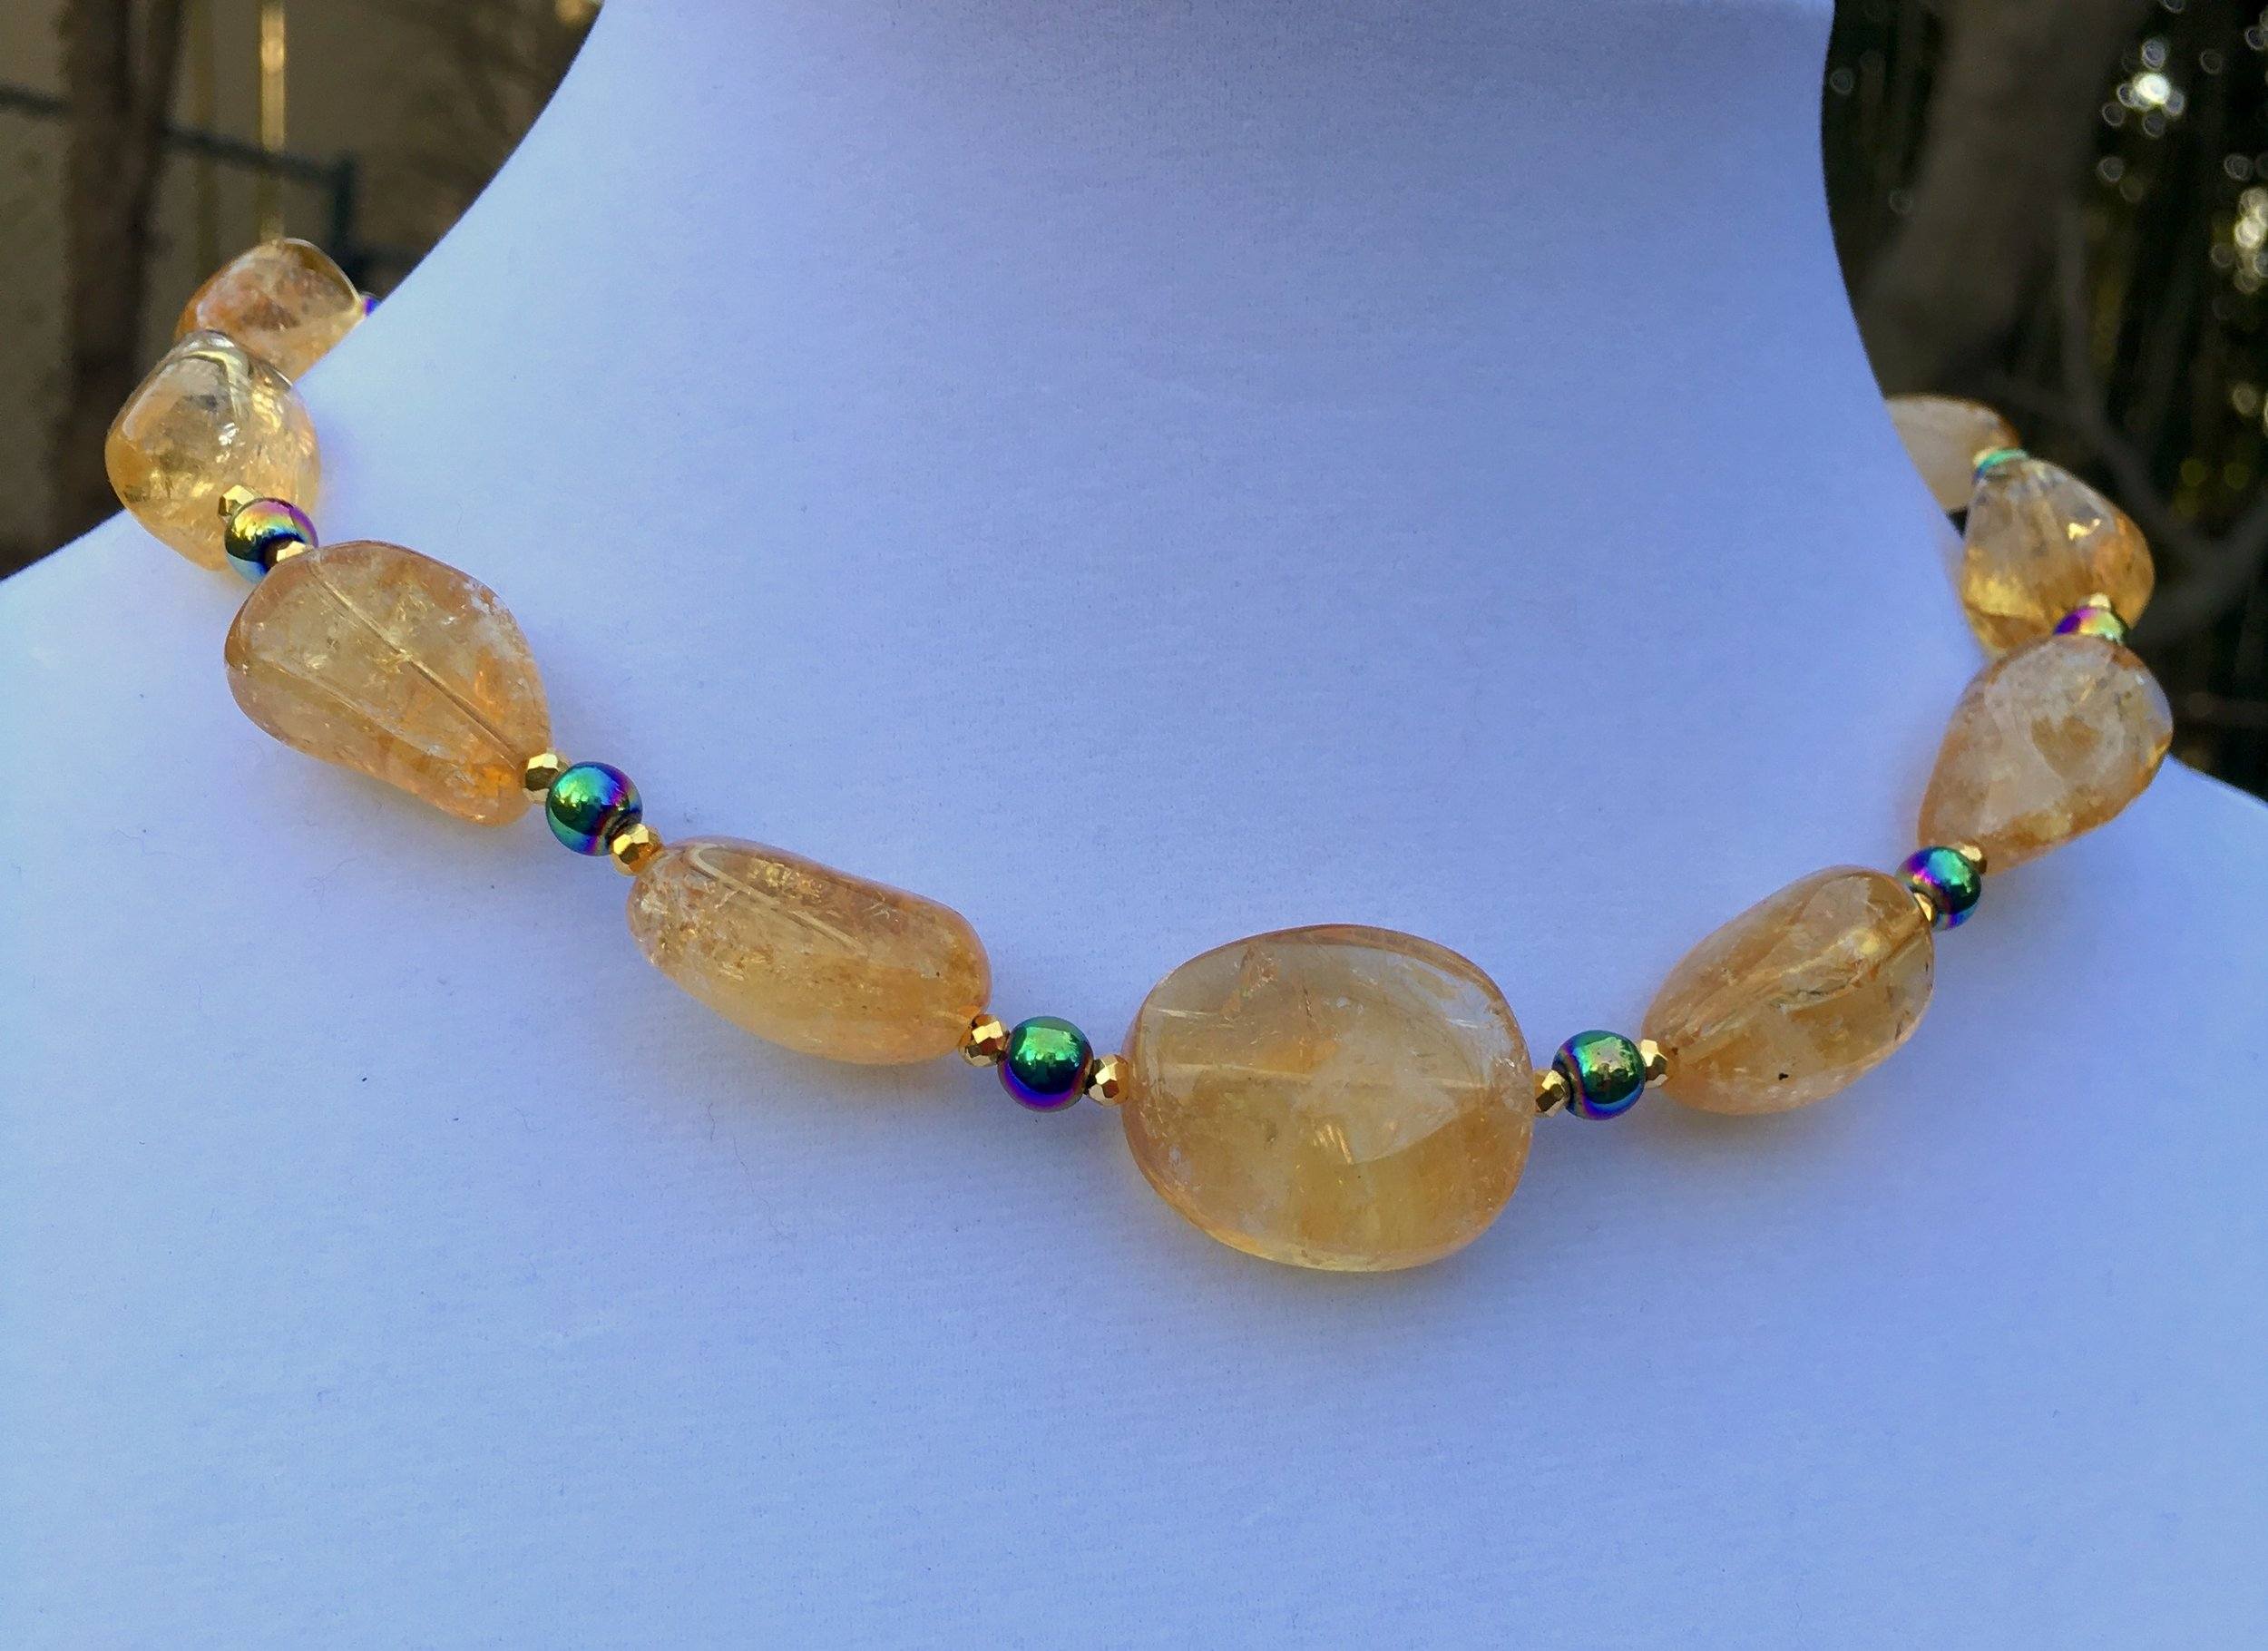 Citrine choker  Center citrine bead is 26 x 20mm. Nuggets are approx 24 x 15mm. Metallic round beads, gold filled clasp. 18 in. $500